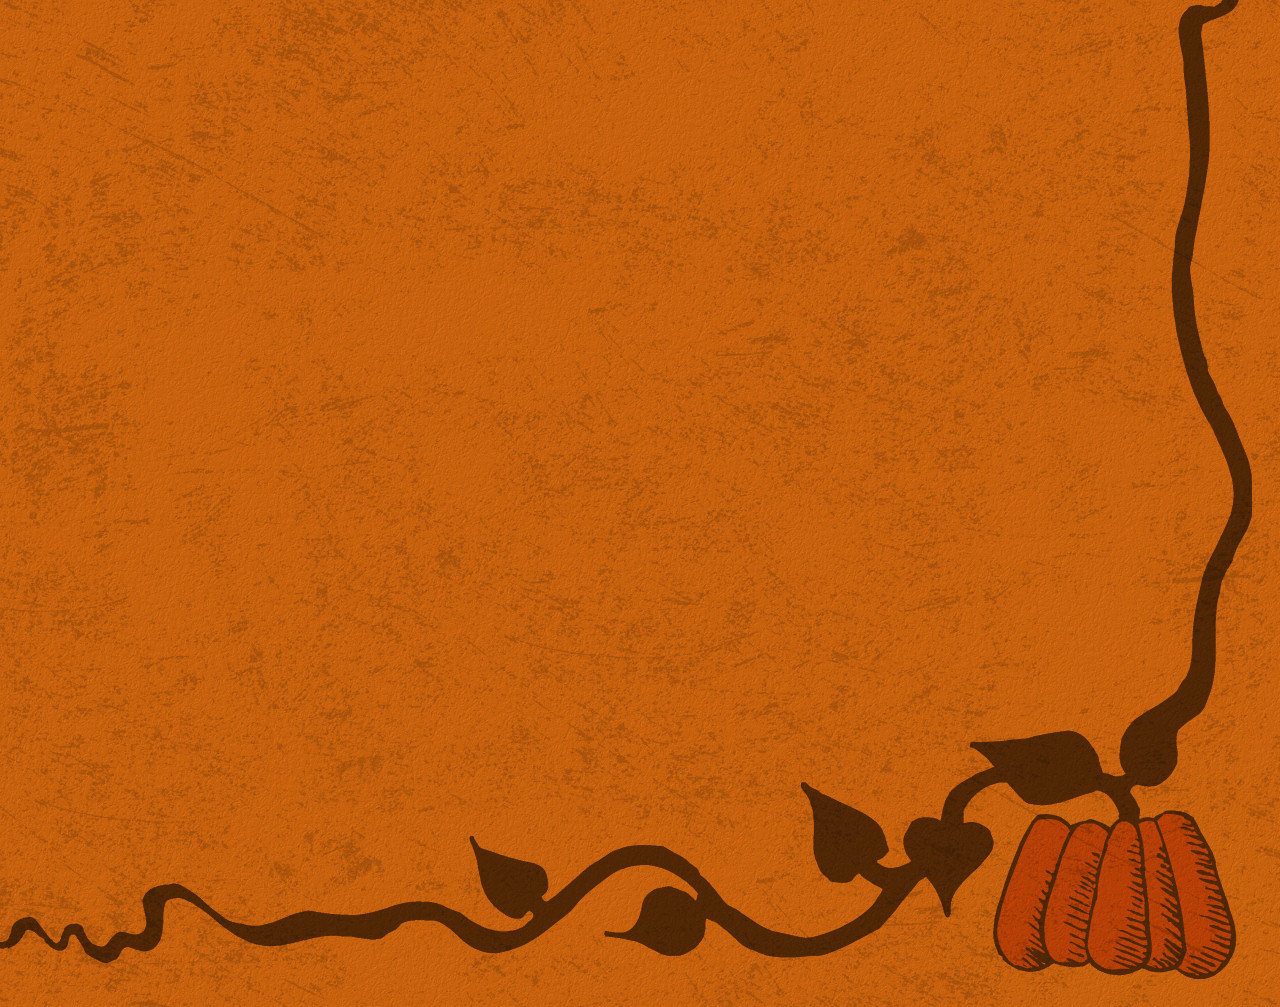 thanksgiving day 2012 free hd thanksgiving wallpapers for ipad and